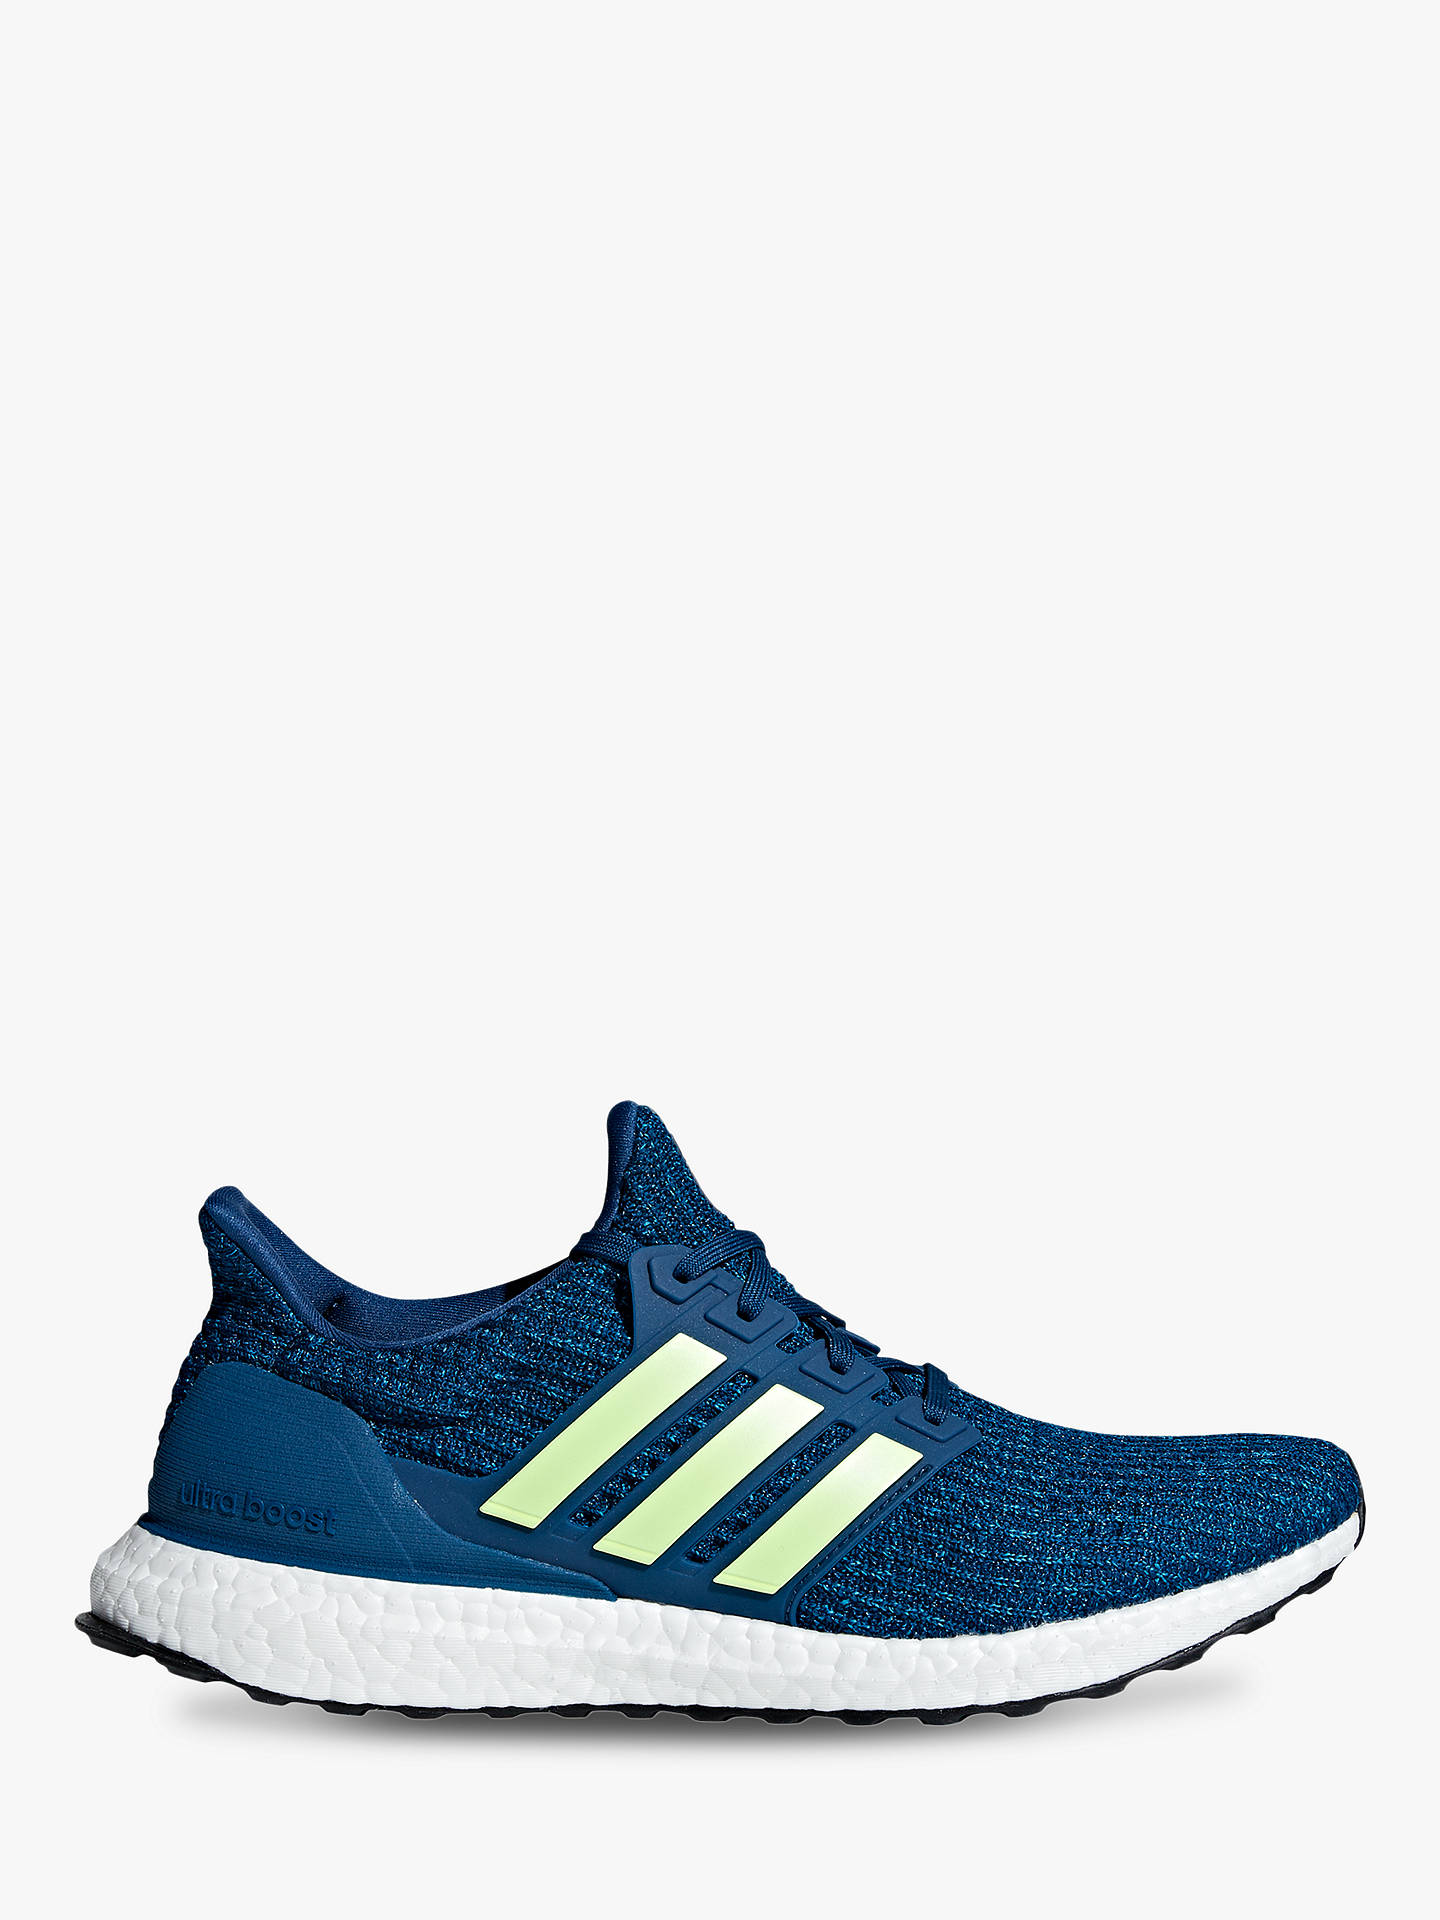 9a9537d613890 adidas UltraBOOST Men s Running Shoes at John Lewis   Partners